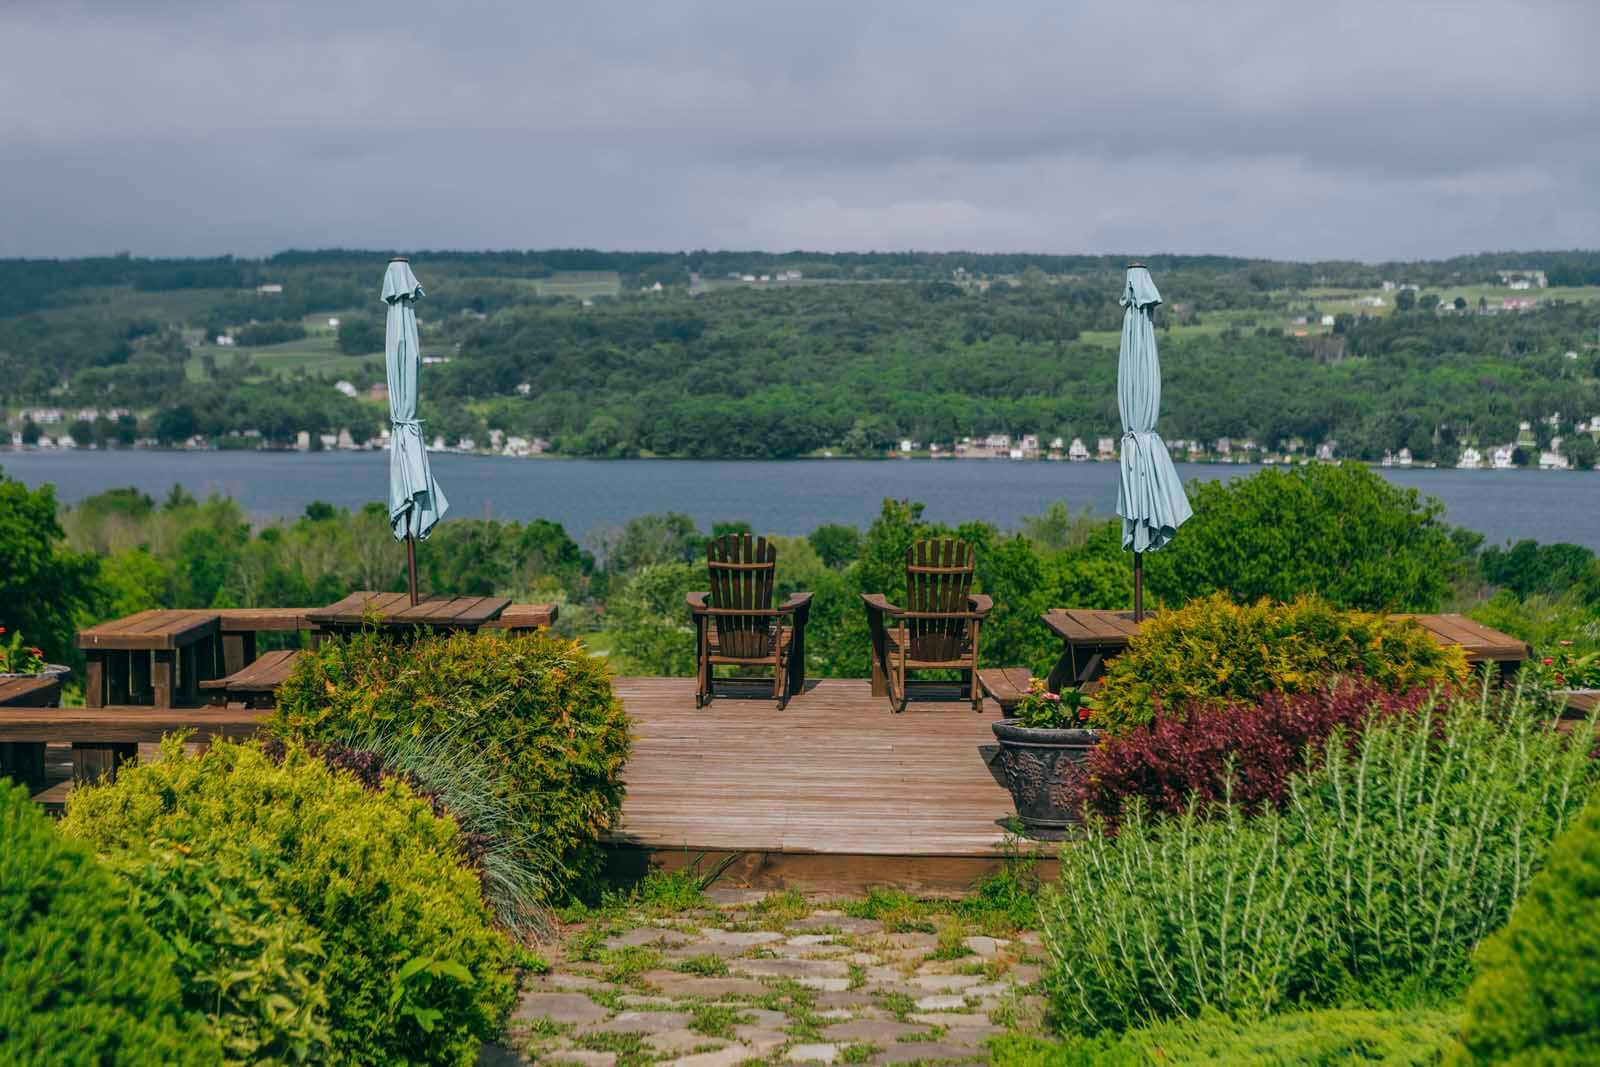 View of Keuka Lake at Keuka Spring Vineyard